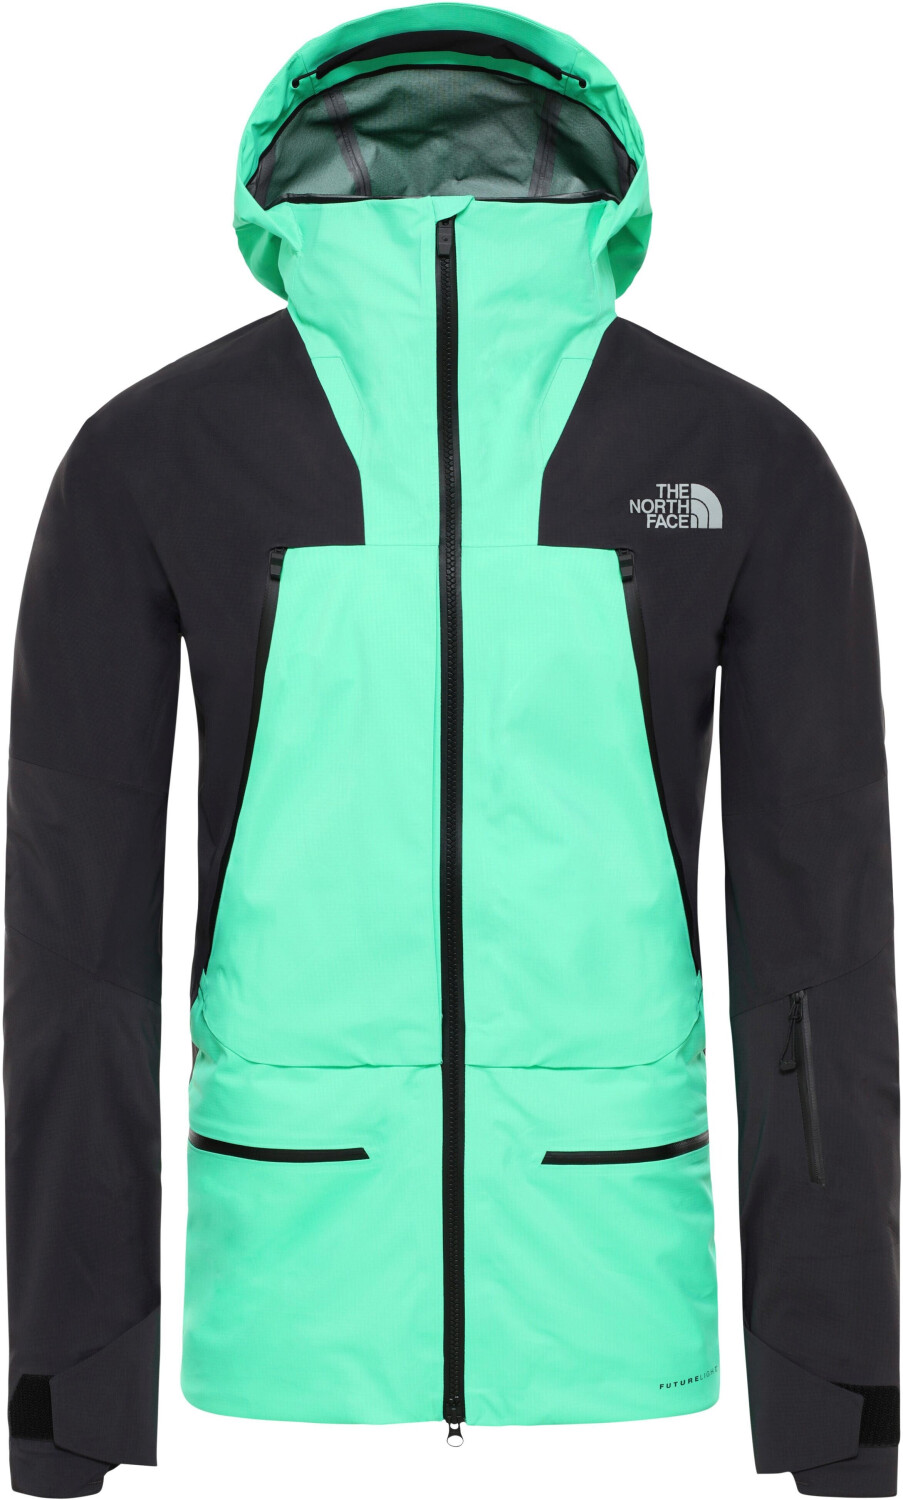 The North Face Purist Futurelight™ Jacket chlorophyll green/ weathered black